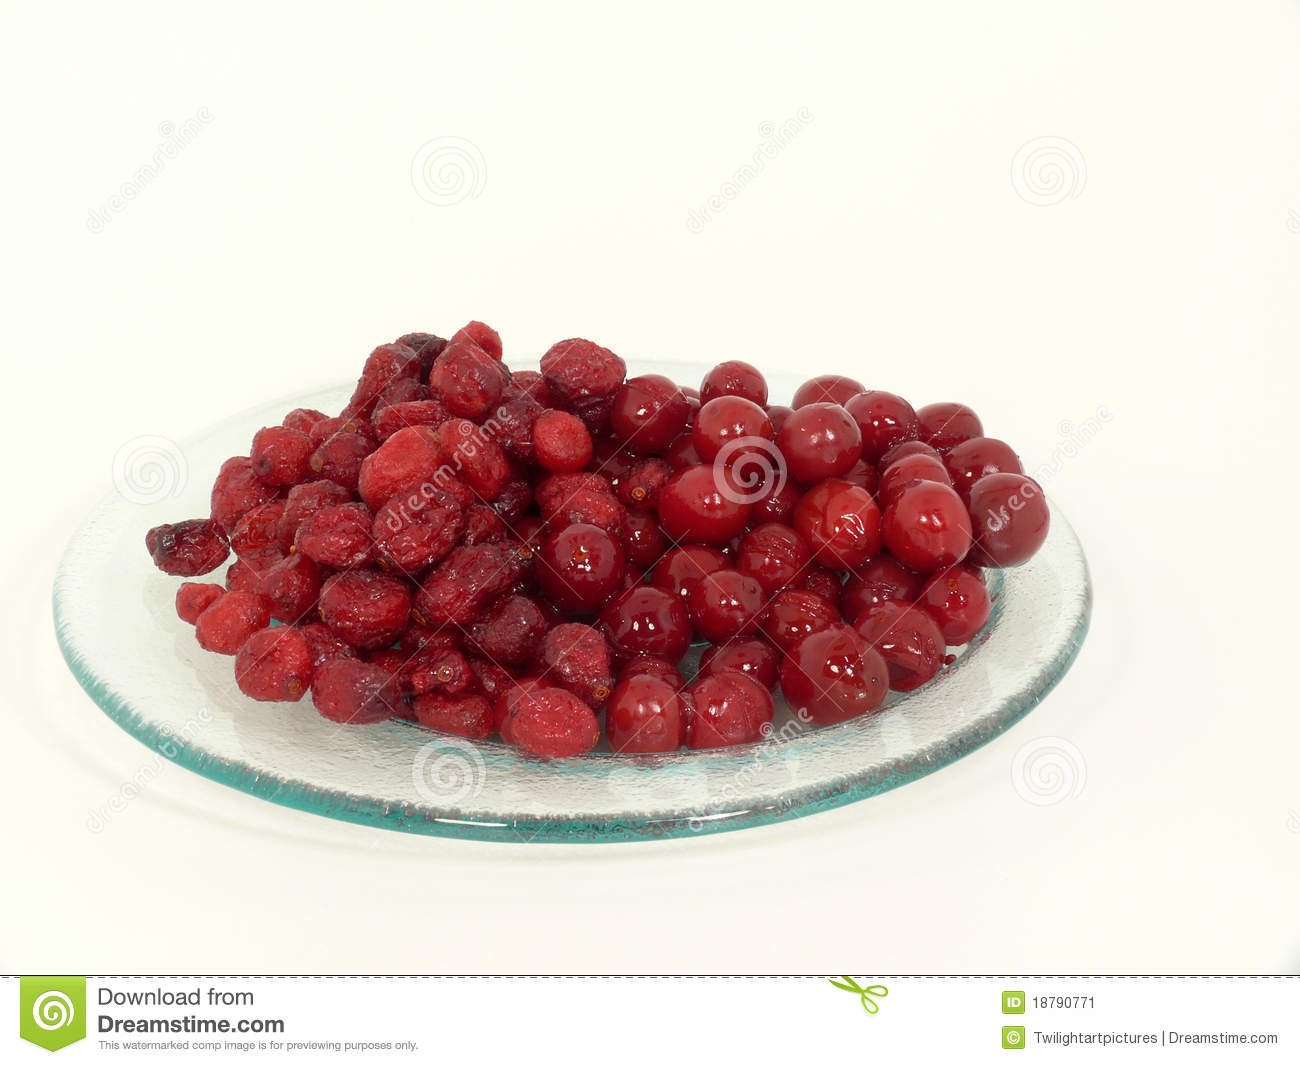 Dried And Fresh Cranberries Stock Image - Image: 18790771